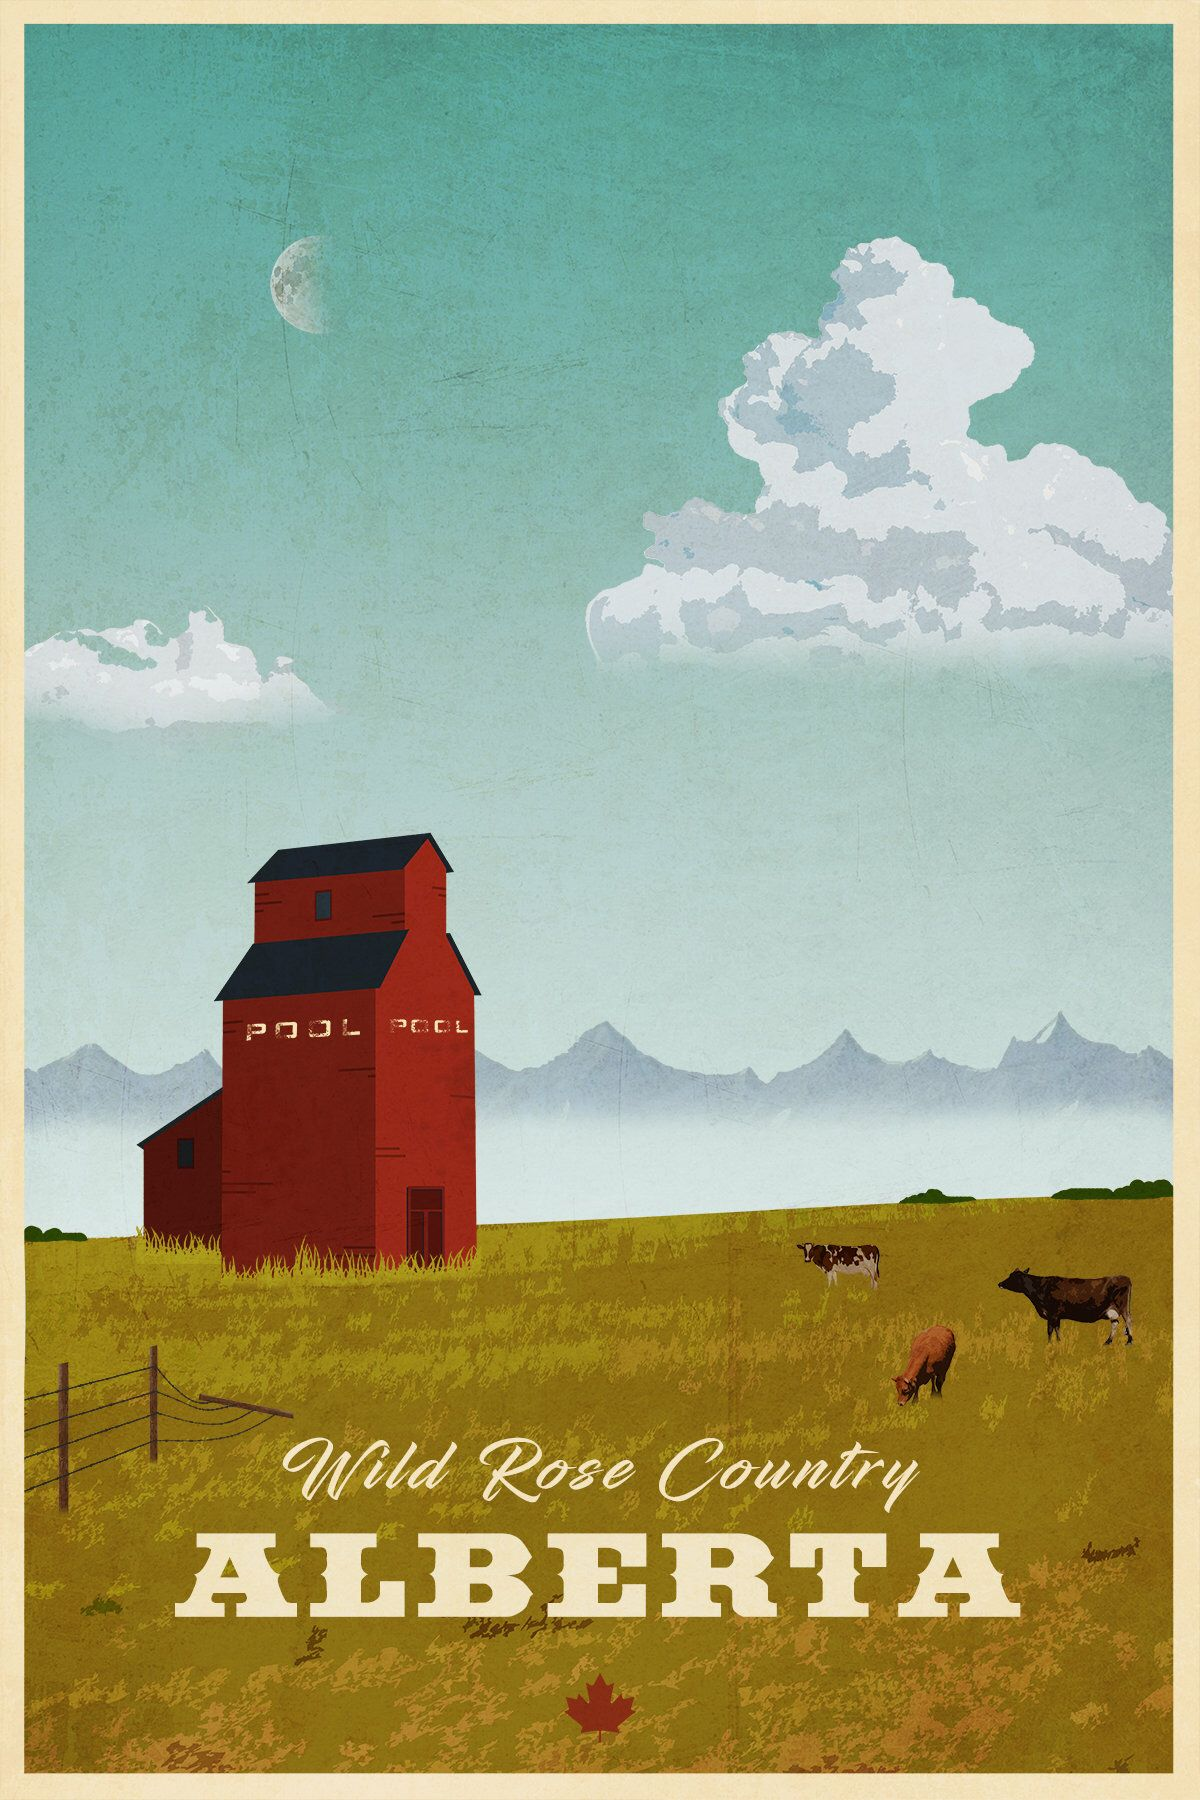 Alberta Travel Poster (With images) Posters canada